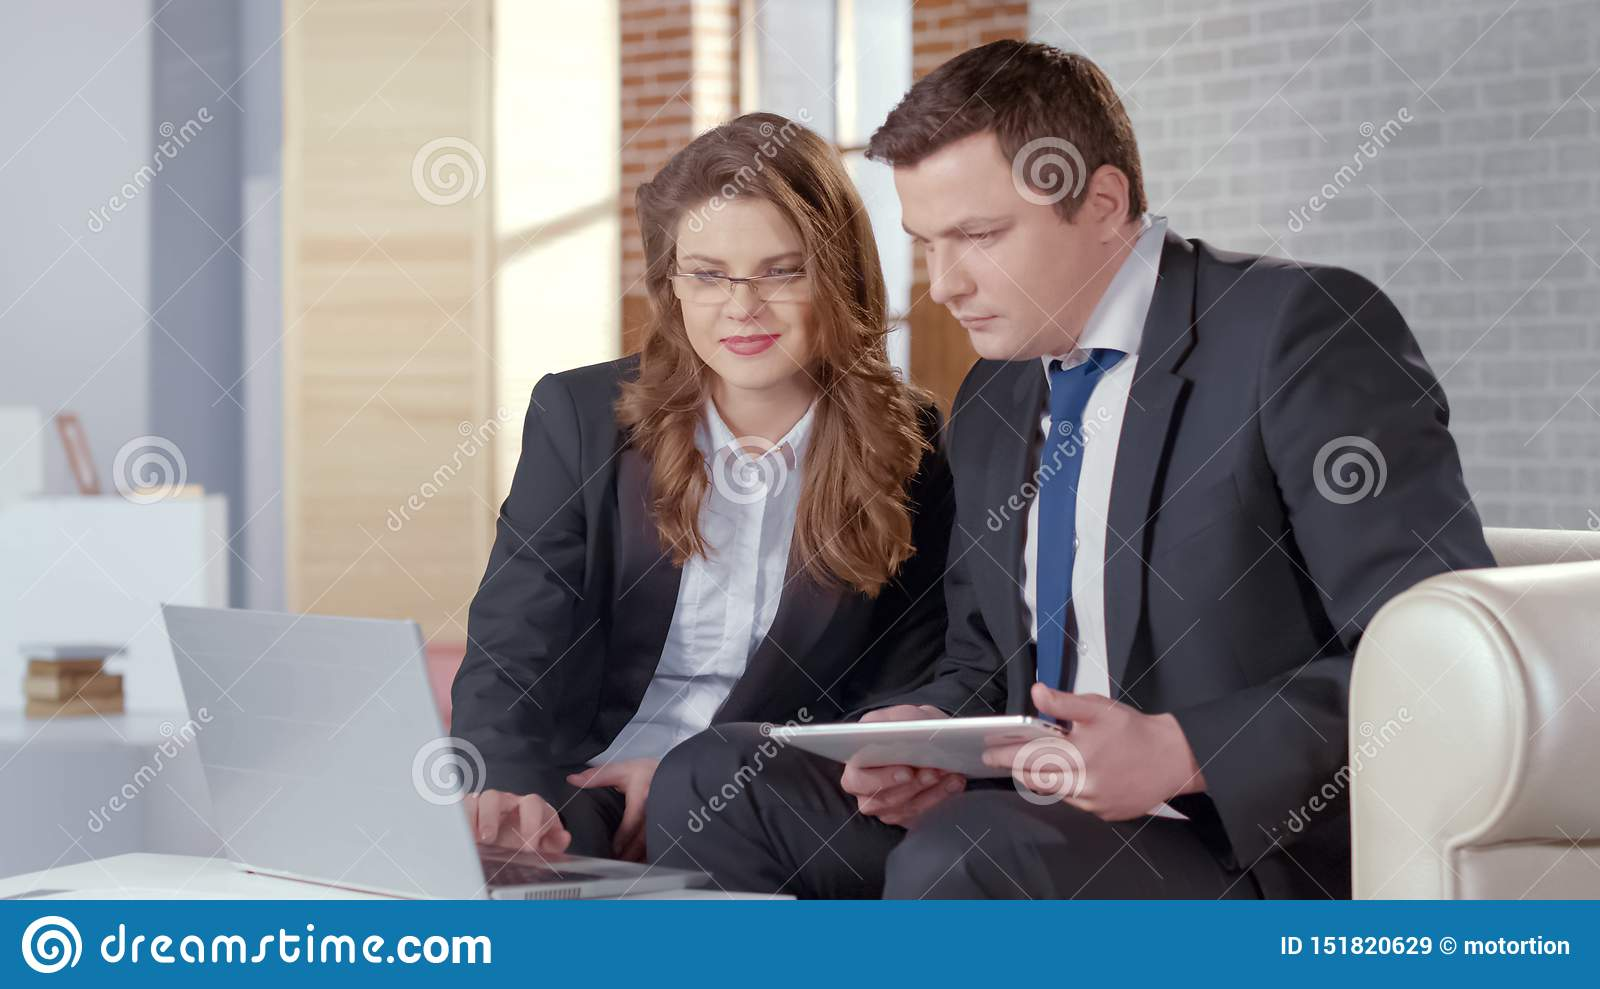 Business lady and man checking presentation on laptop, collaborate in business